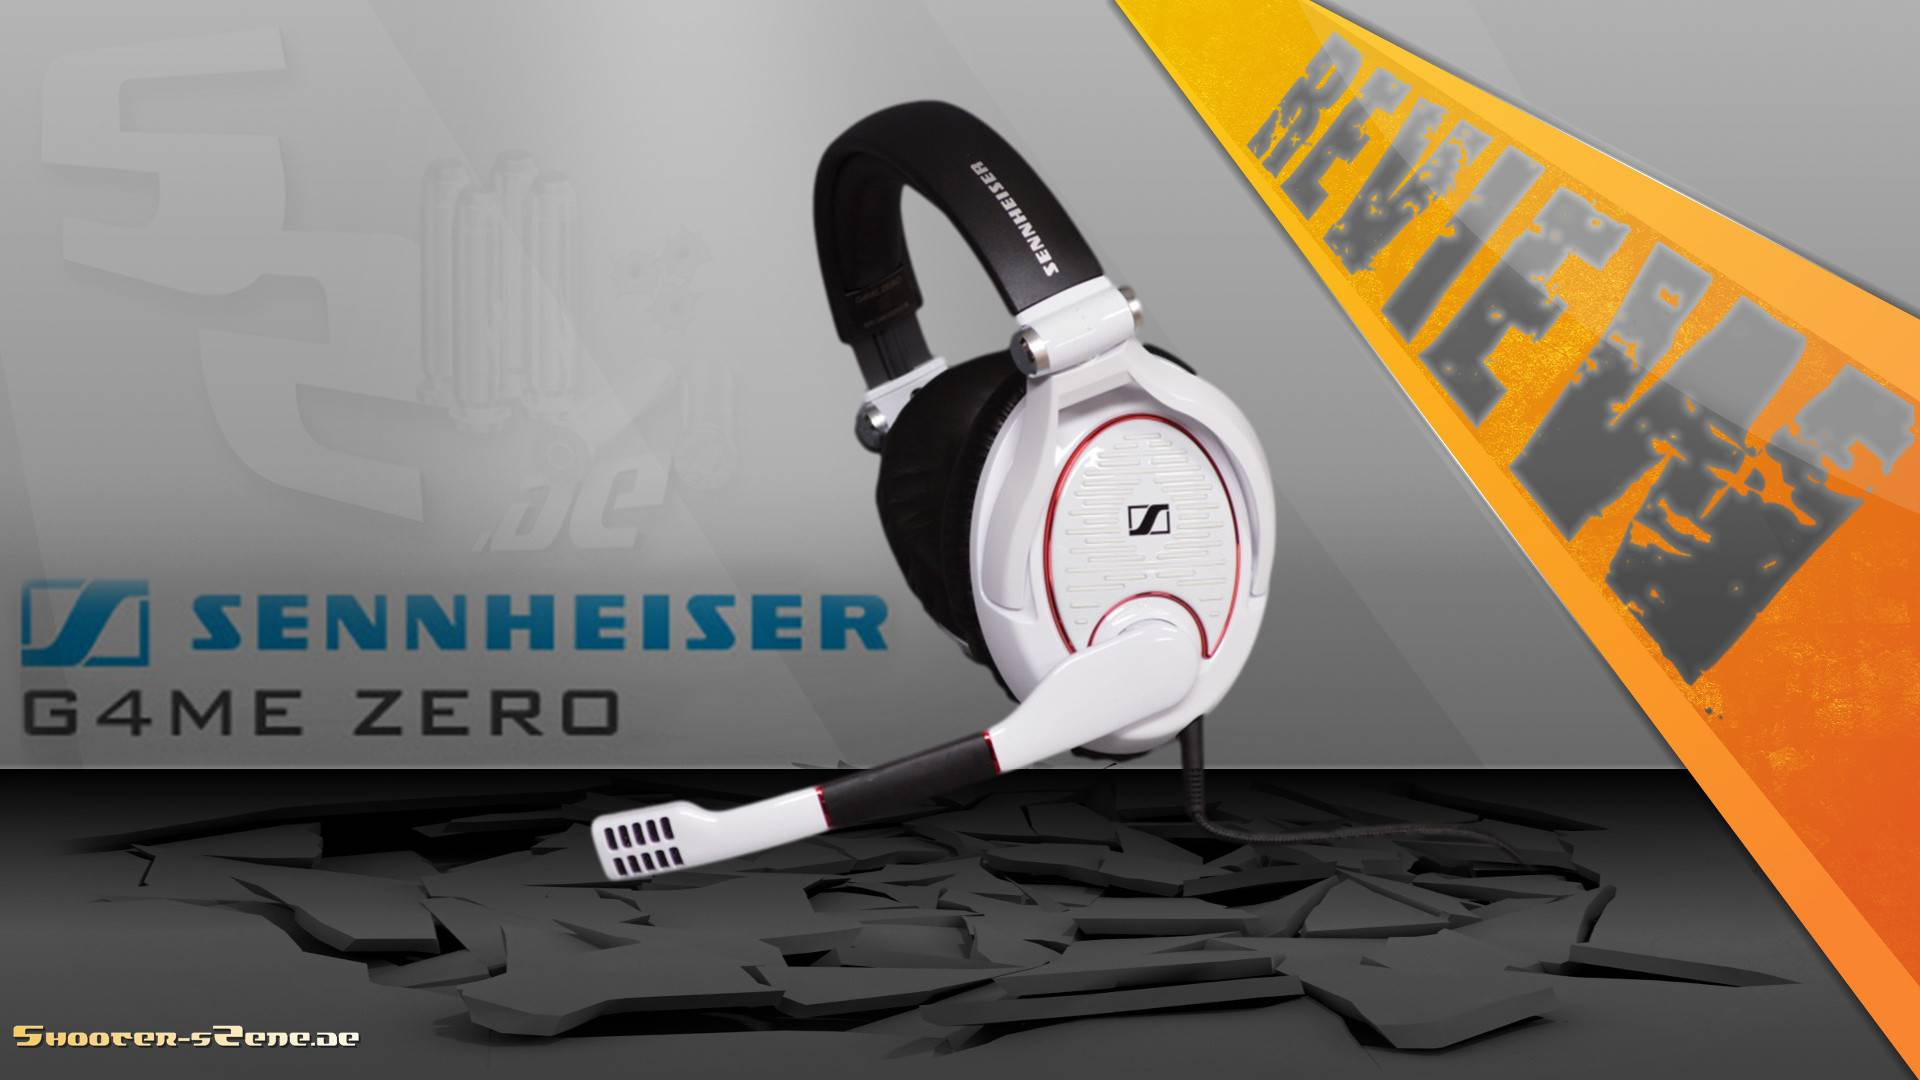 Review: Sennheiser G4ME ZERO